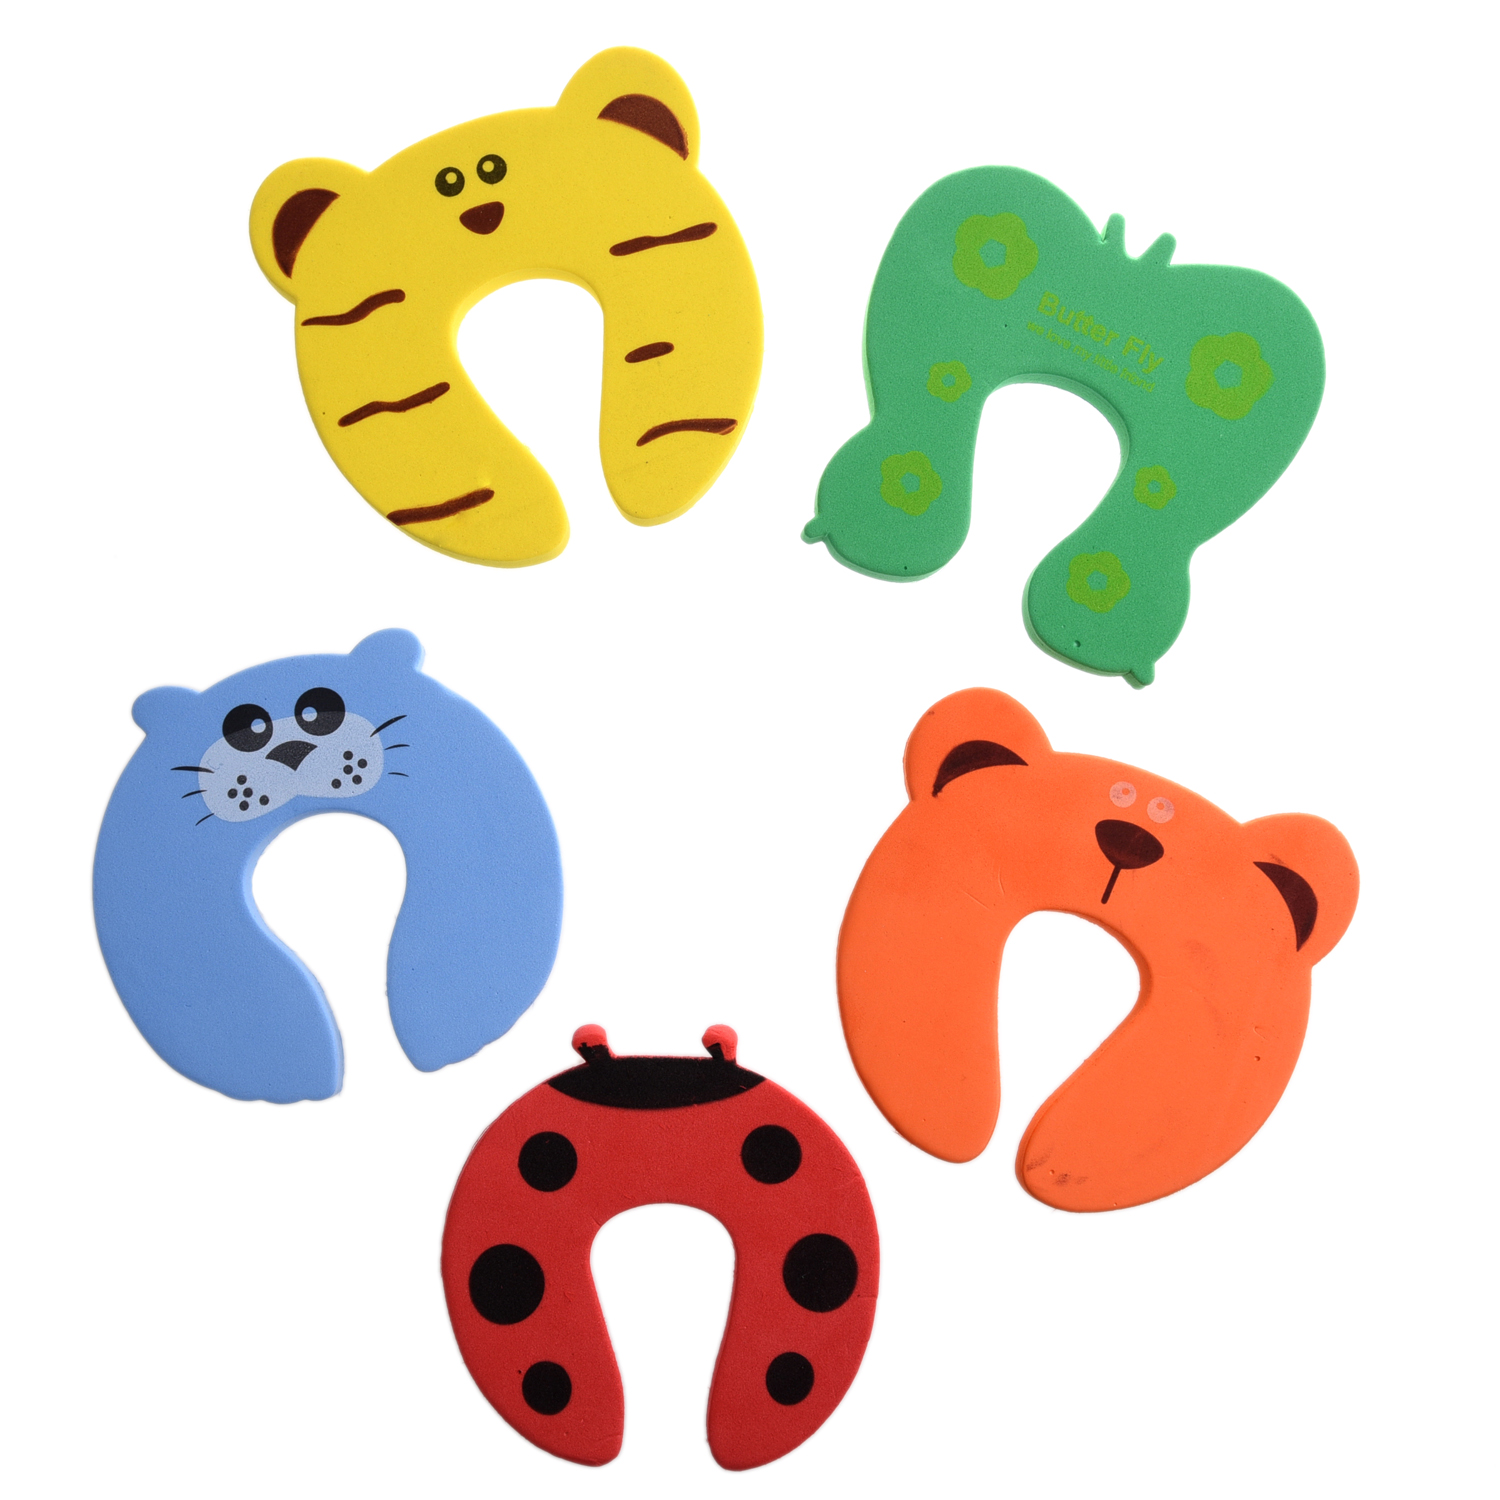 5x Baby Kids Door Jammer Finger Pinch Guard Child Toddler Infant Safety Protector Stopper Cute Animal Designs